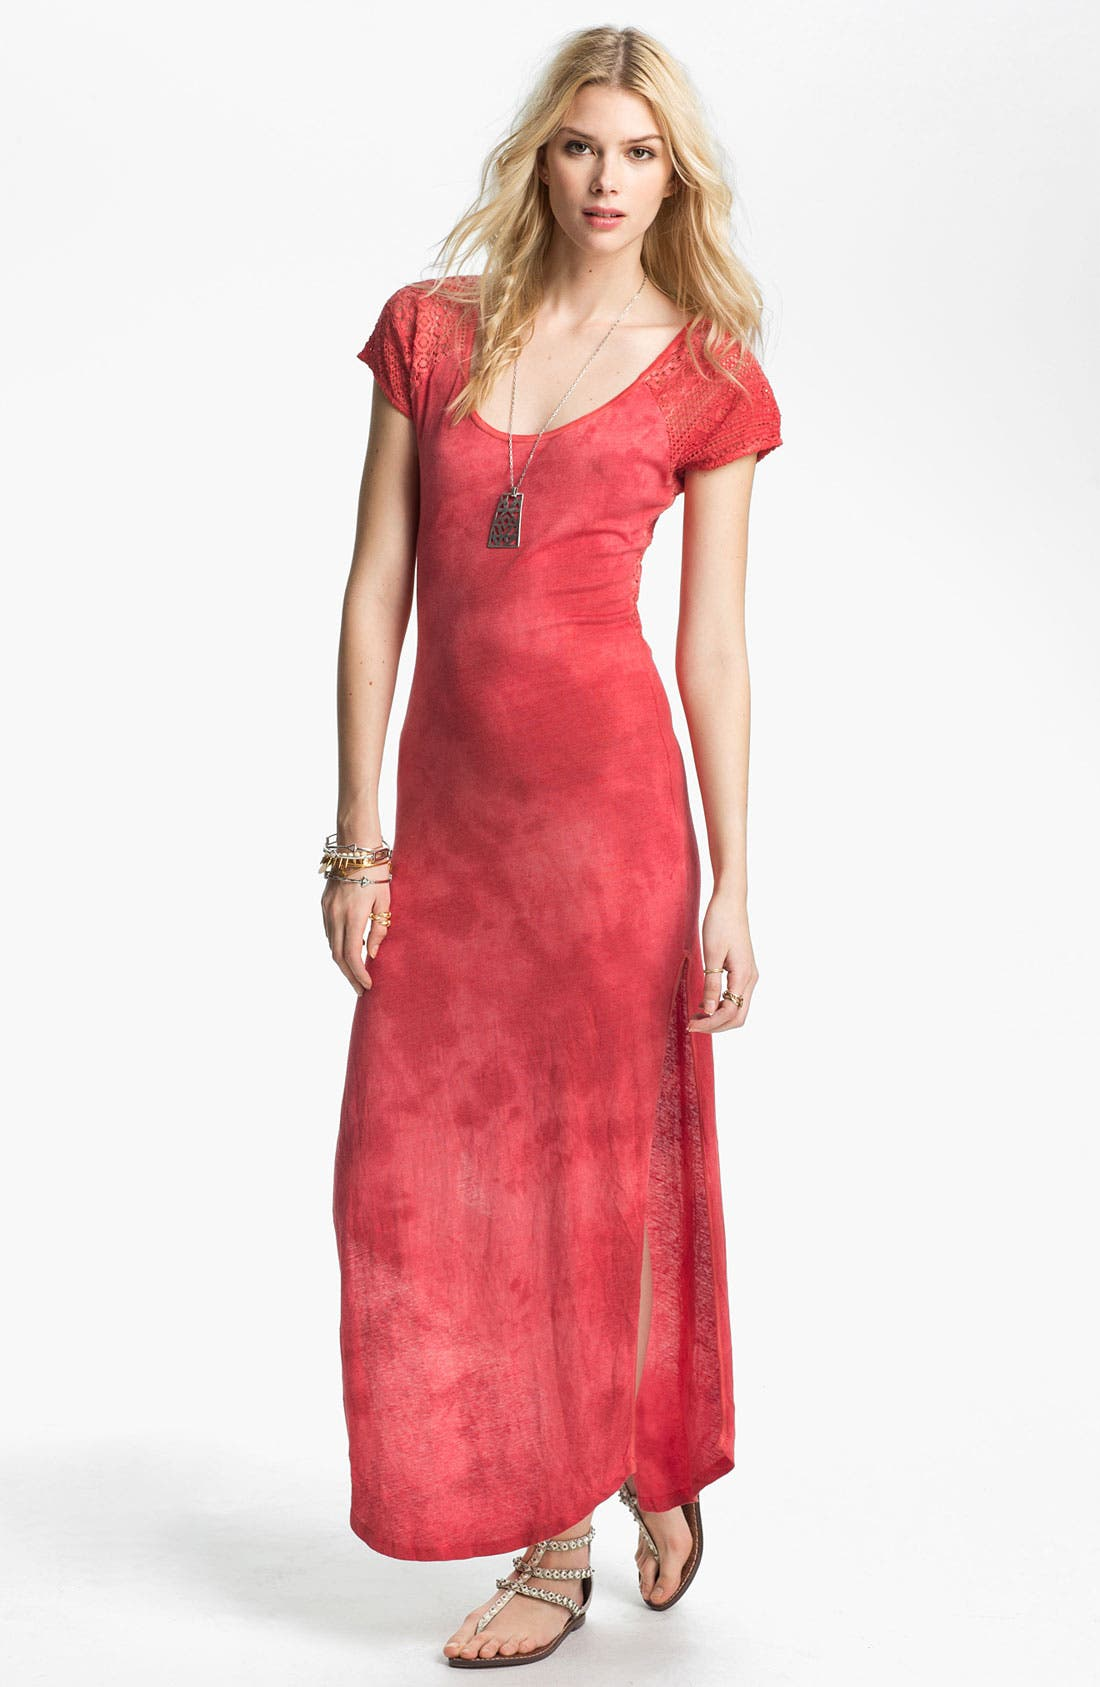 Alternate Image 1 Selected - Free People Lace Detail Tie Dye Maxi Dress